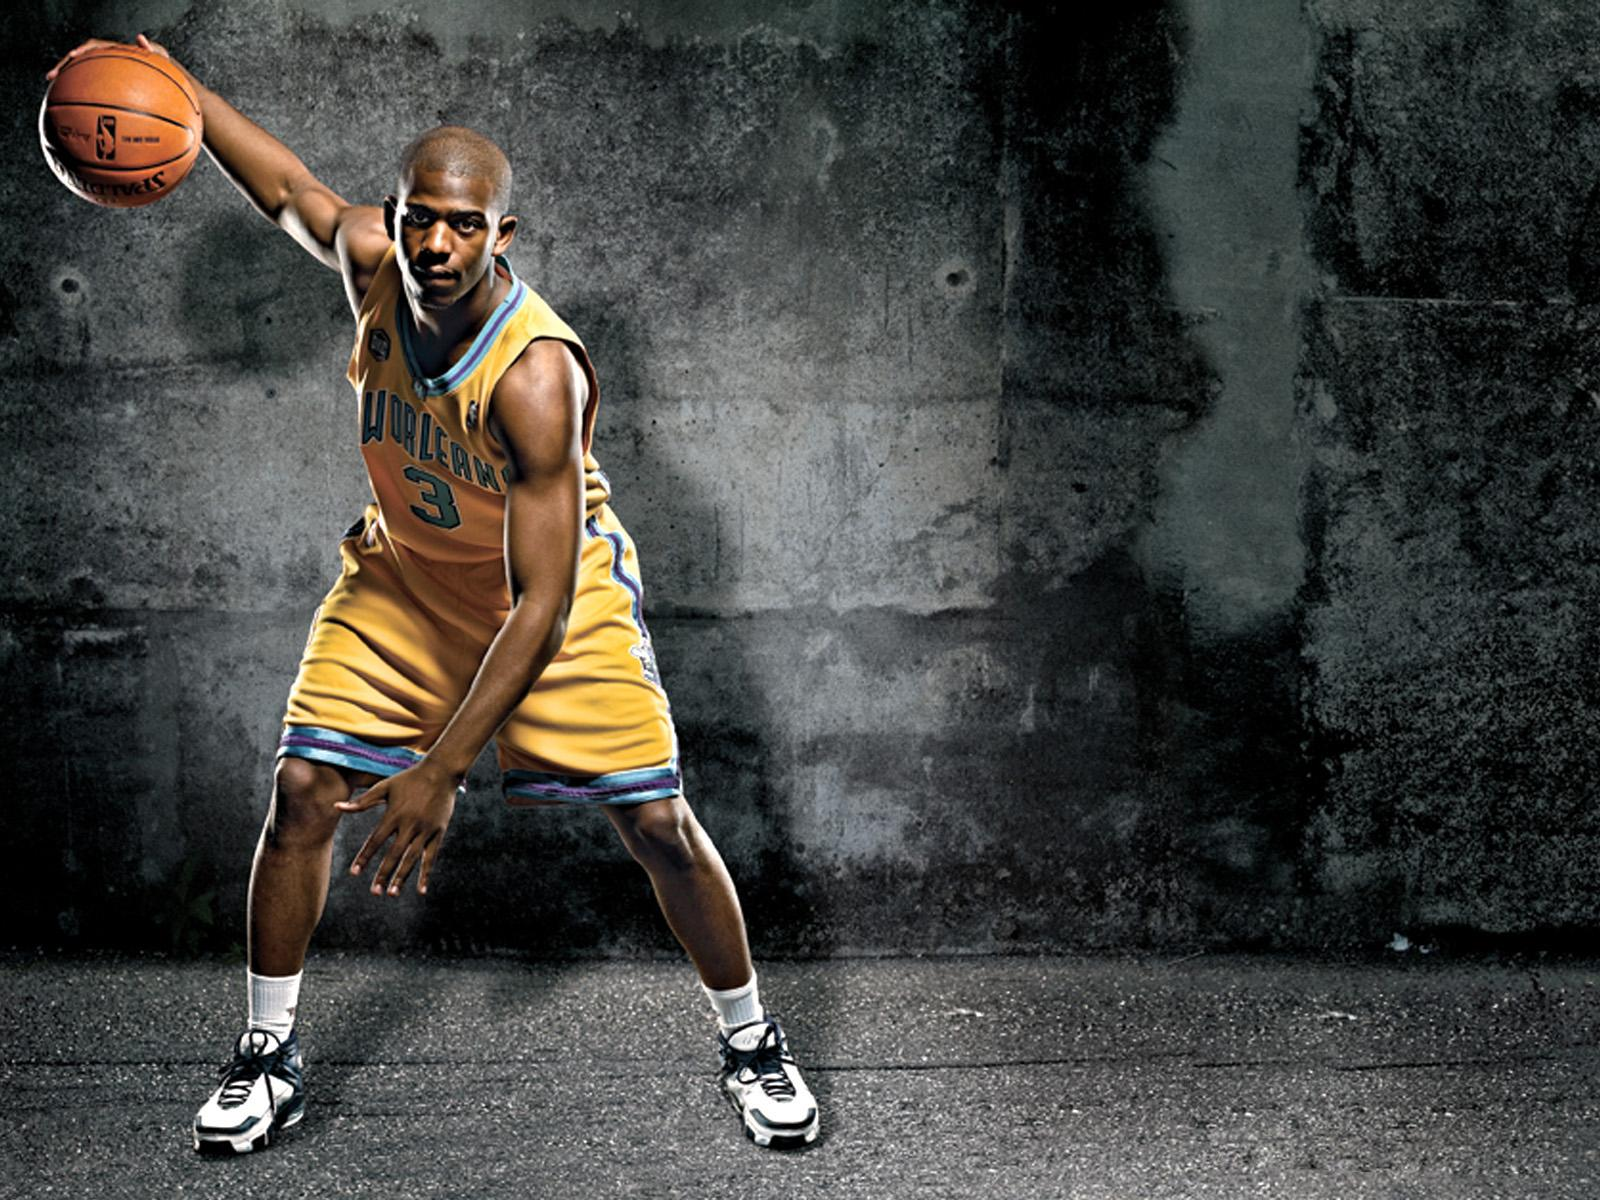 Обои Баскетболист Chris Paul 1600x1200